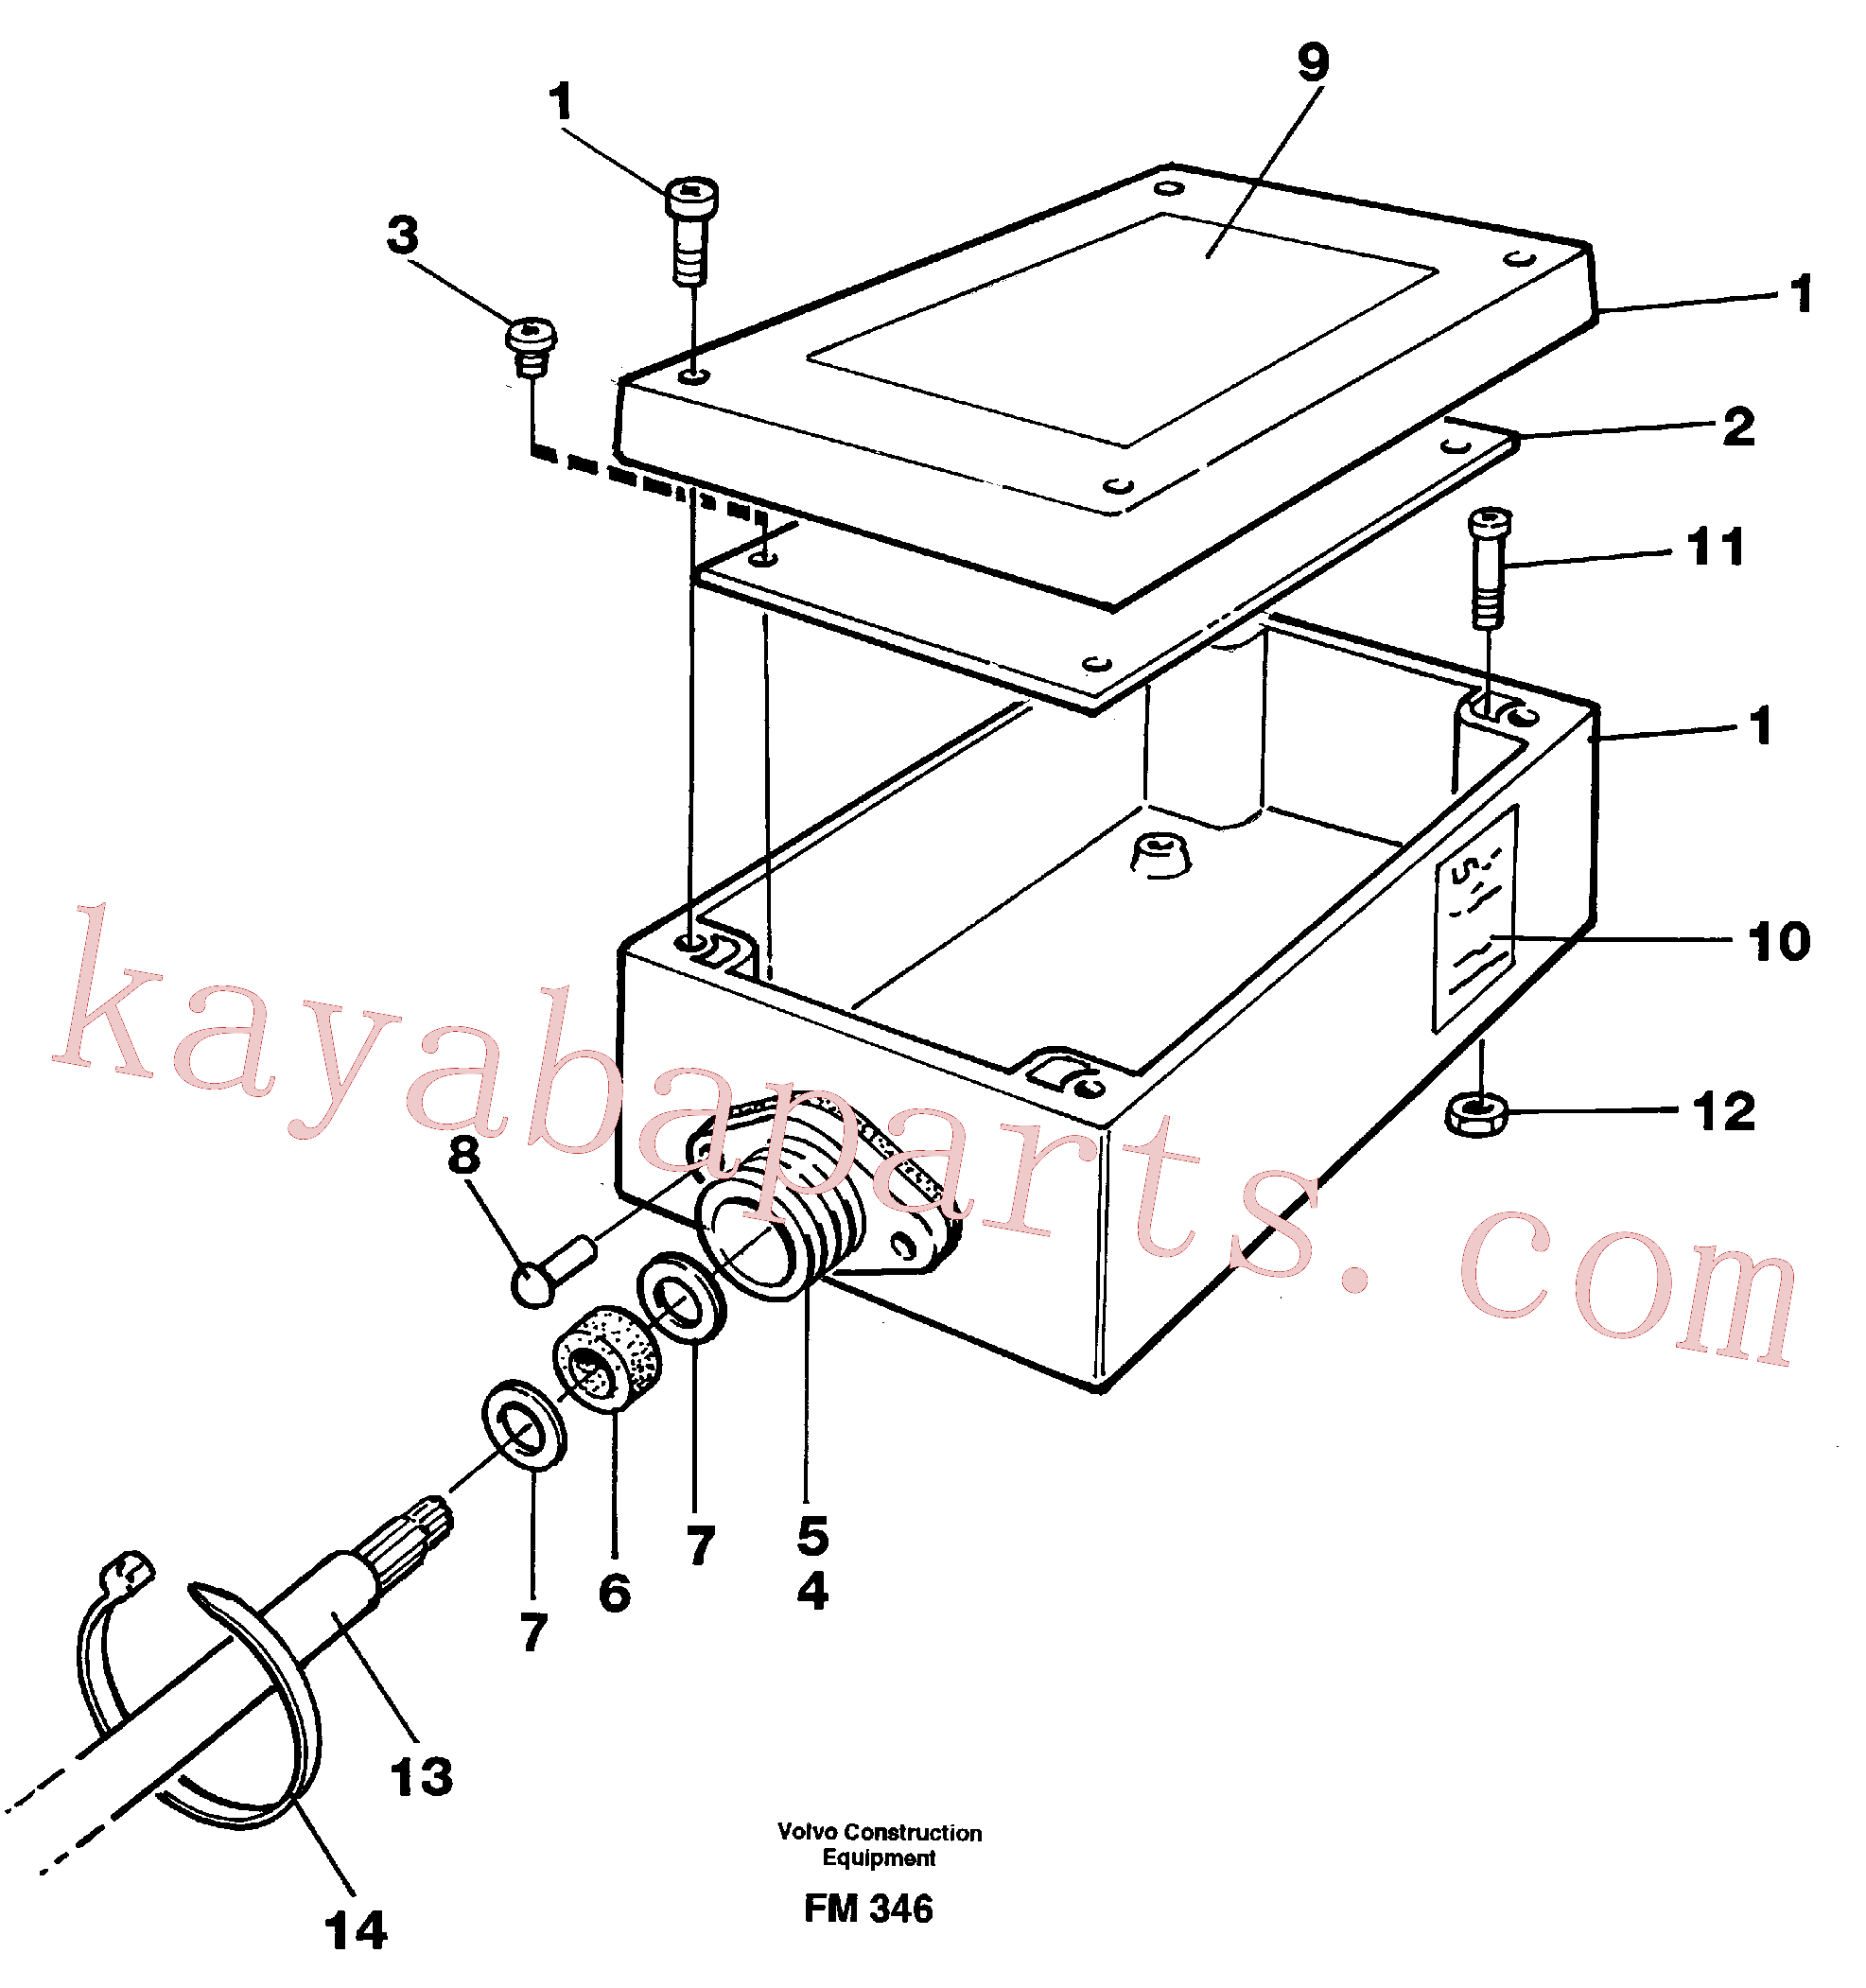 VOE14245946 for Volvo Electric installation for load limiting device(FM346 assembly)